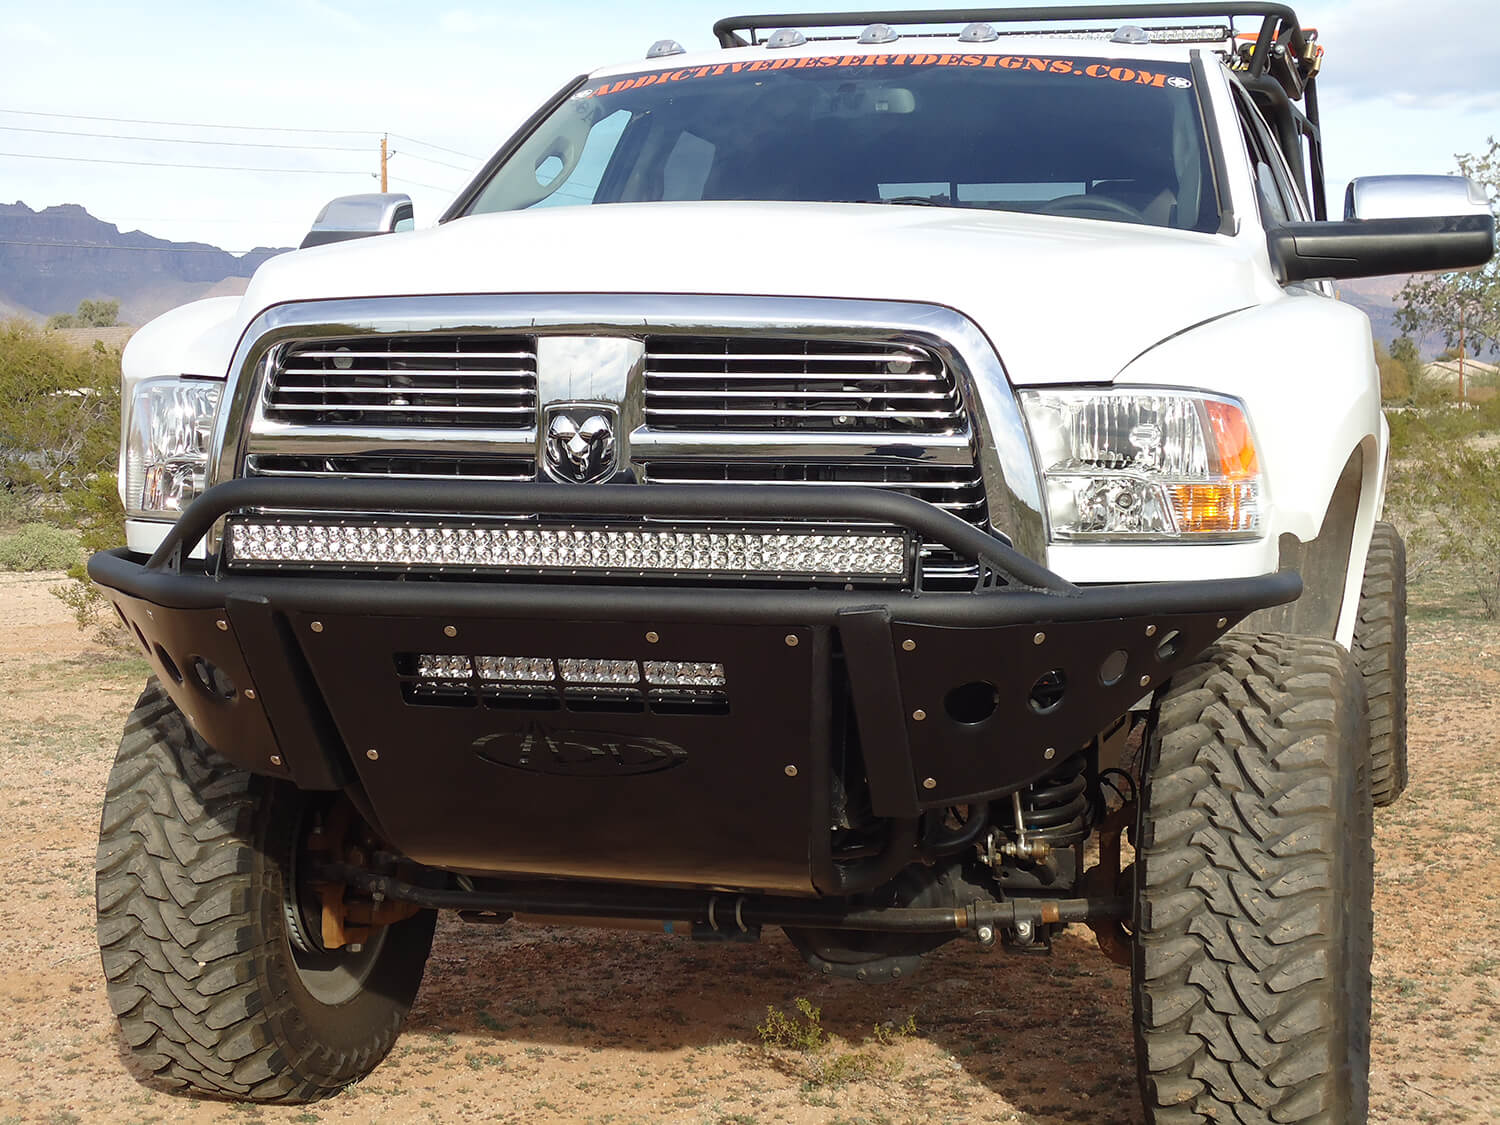 2010 2018 dodge ram 25003500 stealth front bumper off road body dodge ram 25003500 front hd standard front bumper with stealth panels with 40 aloadofball Choice Image